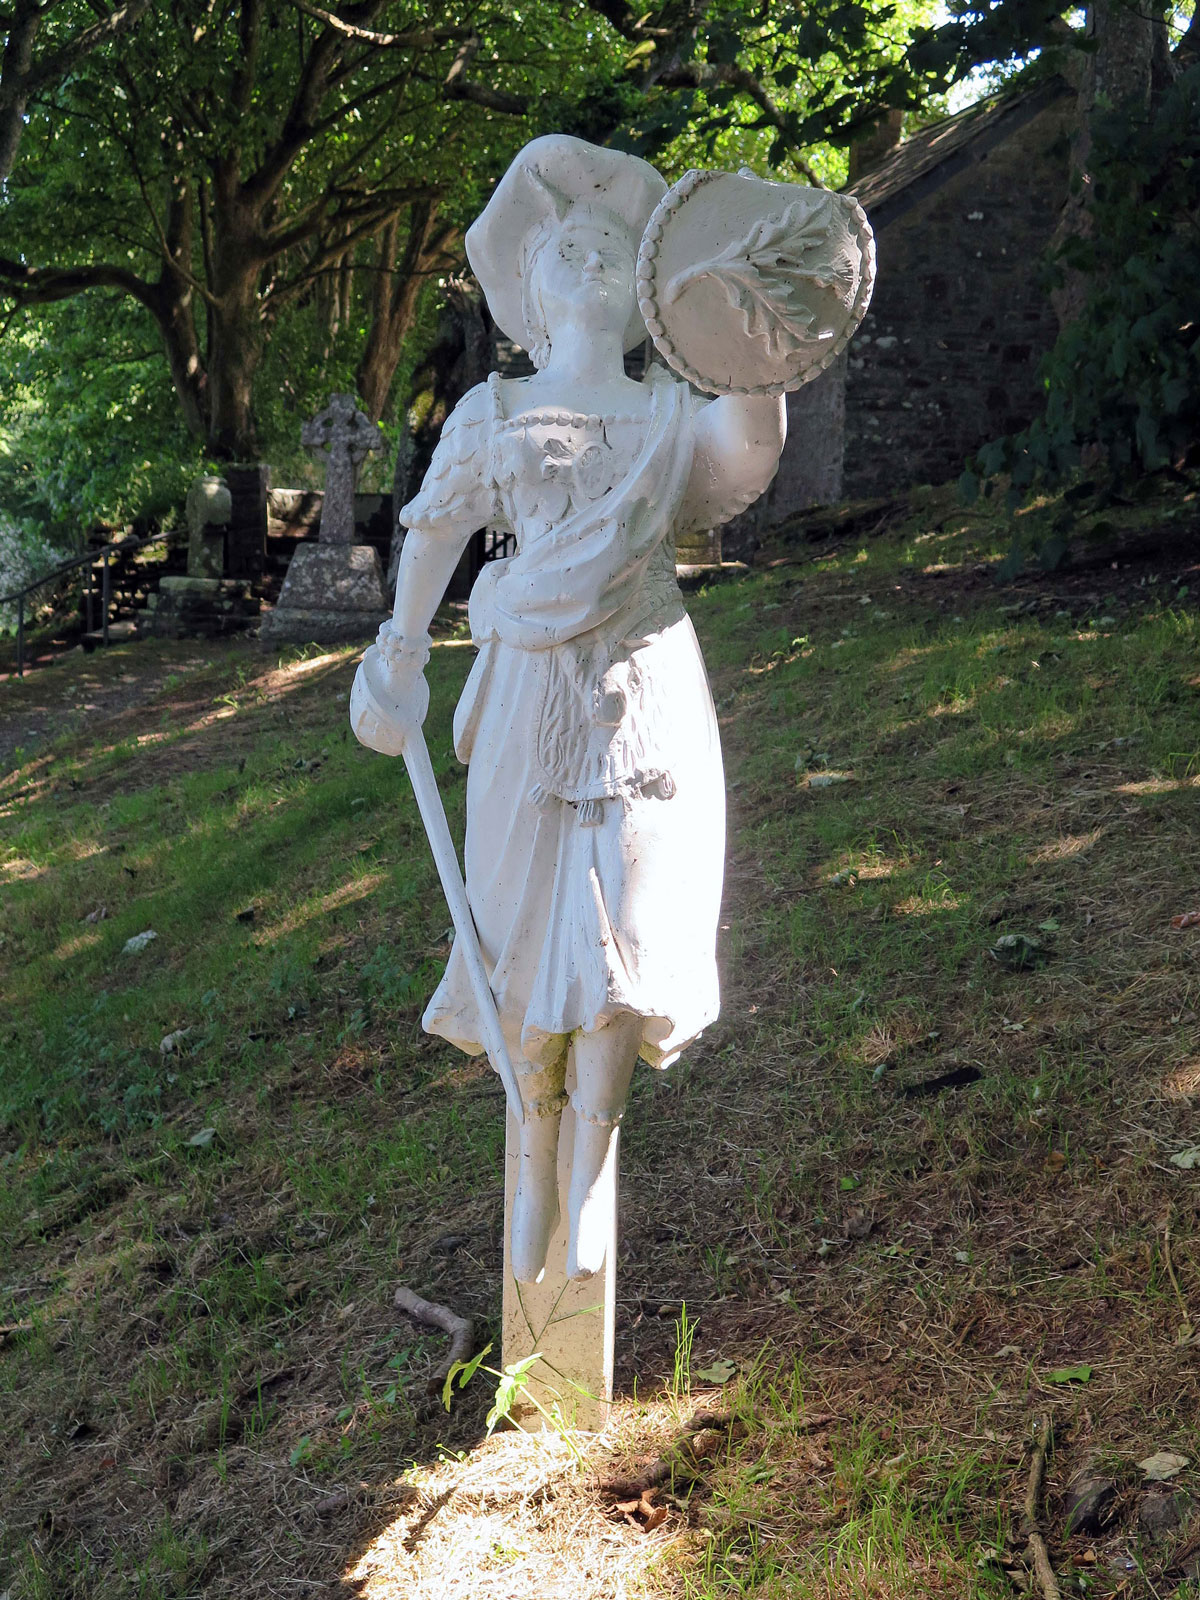 Replica of the Figurehead from the Caledonia in the Churchyard